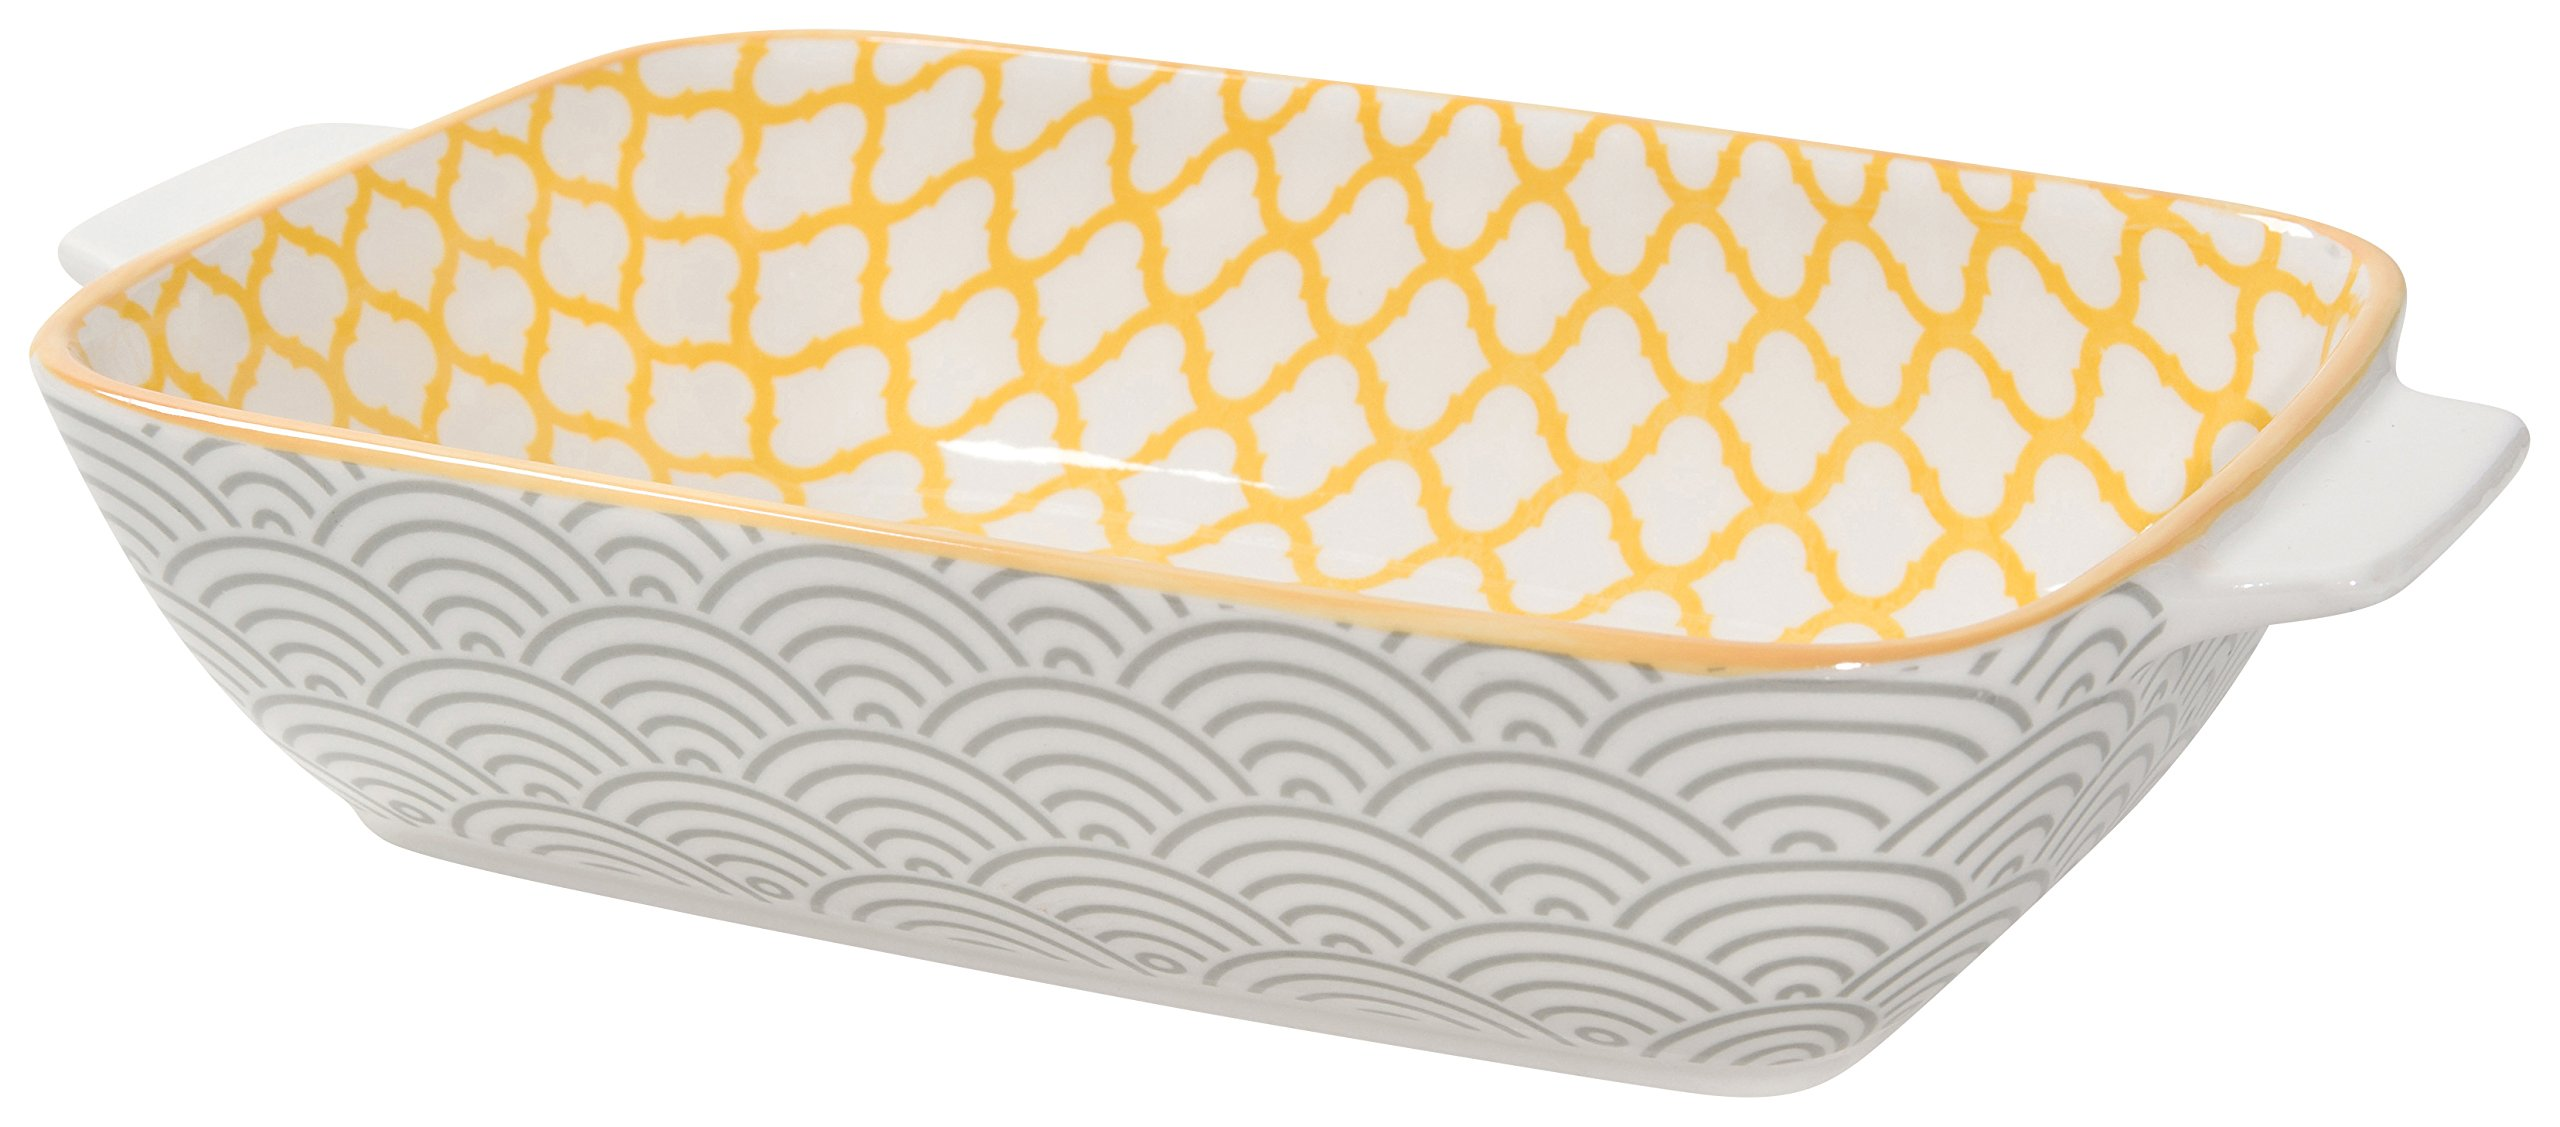 Now Designs Stamped Baking Dish, 4.5 inches by 7.5 Inches,Sunrock Design by Now Designs